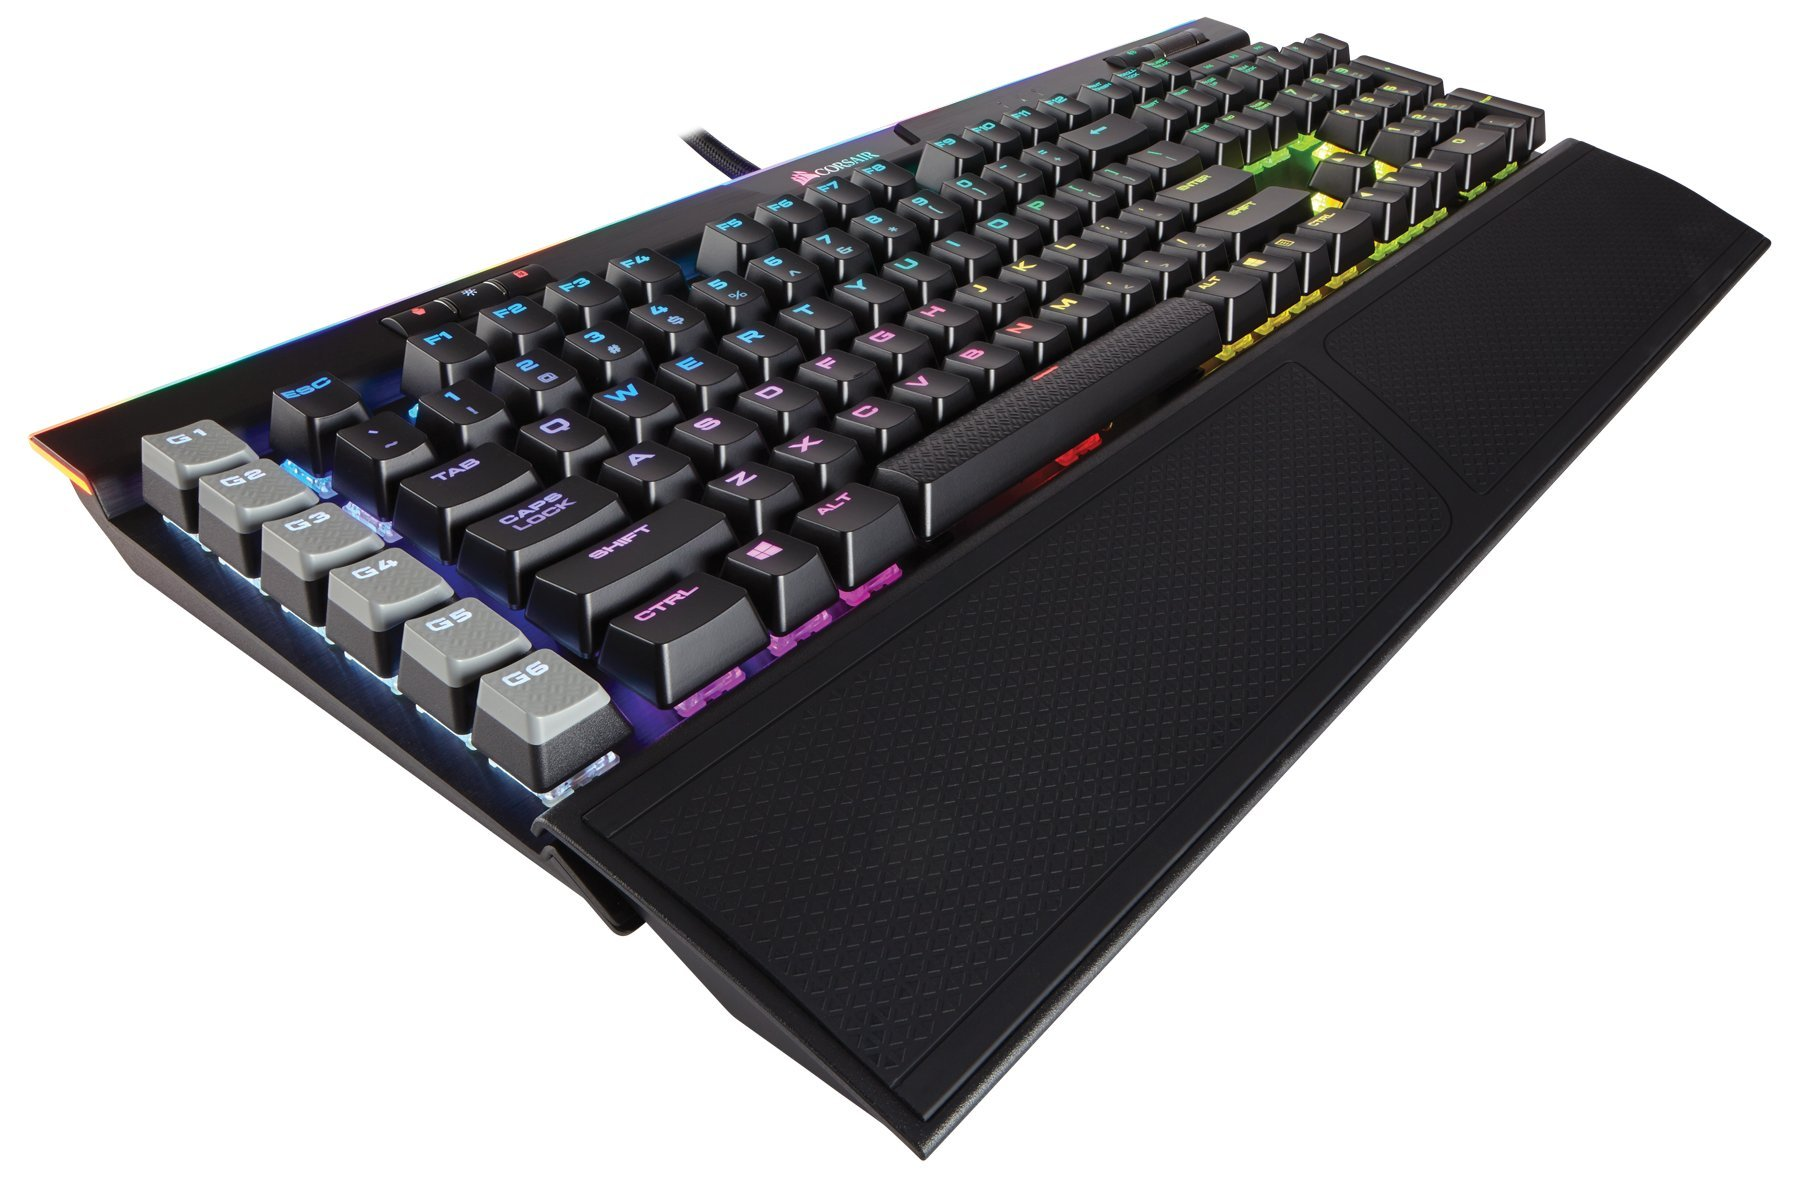 CORSAIR K95 RGB PLATINUM Mechanical Gaming Keyboard - USB Passthrough & Media Controls - Fastest Cherry MX Speed - RGB LED Backlit - Black Finish by Corsair